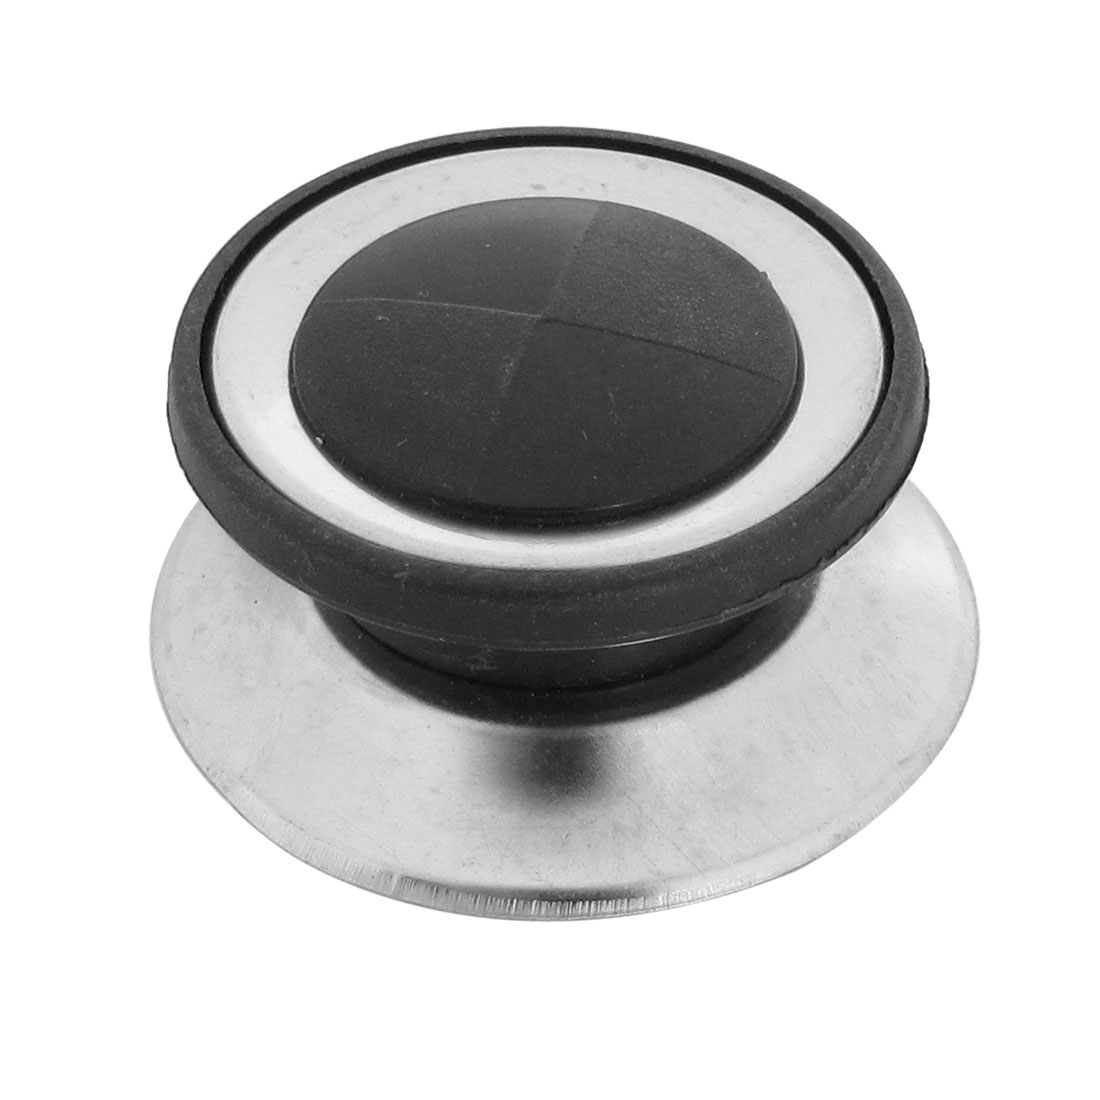 Kitchen Ware Plastic Stainless Steel Pot Pan Lid Replacement Knob 46mm Dia